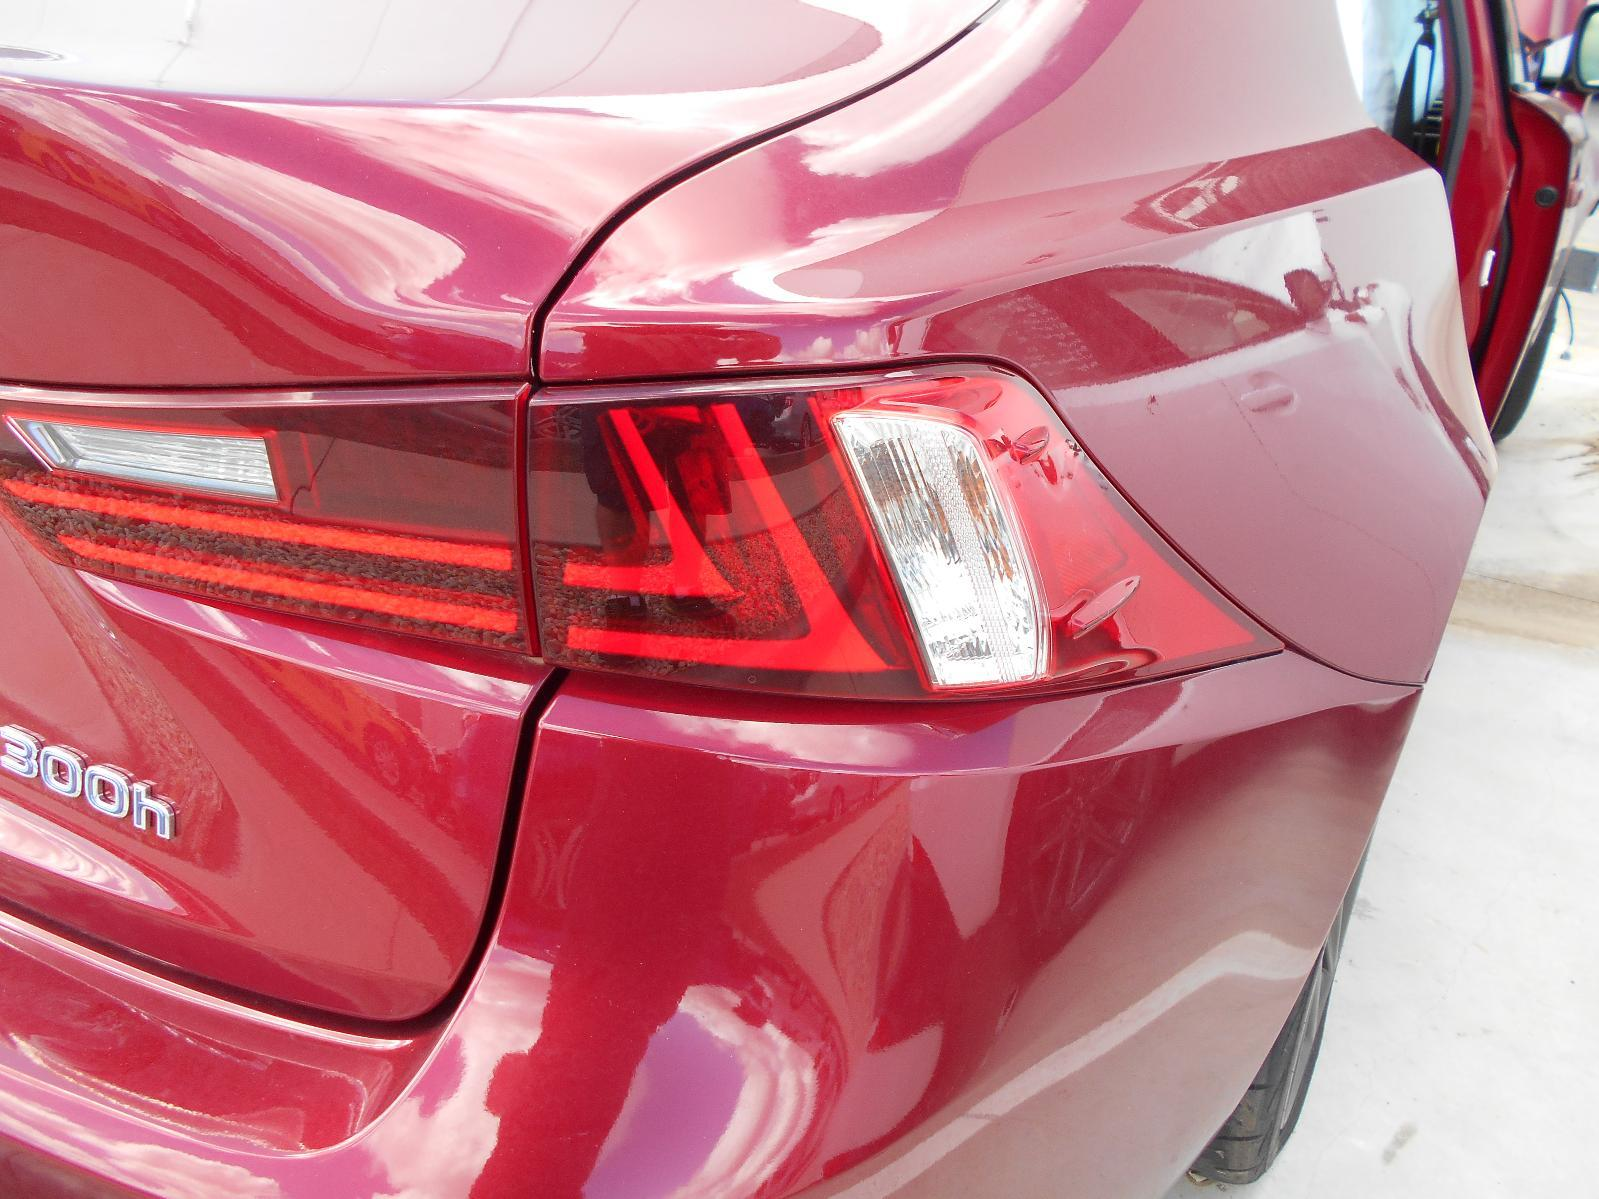 LEXUS IS SERIES, Right Taillight, IS200t/IS250/IS300H/IS350, XE30, 04/13-